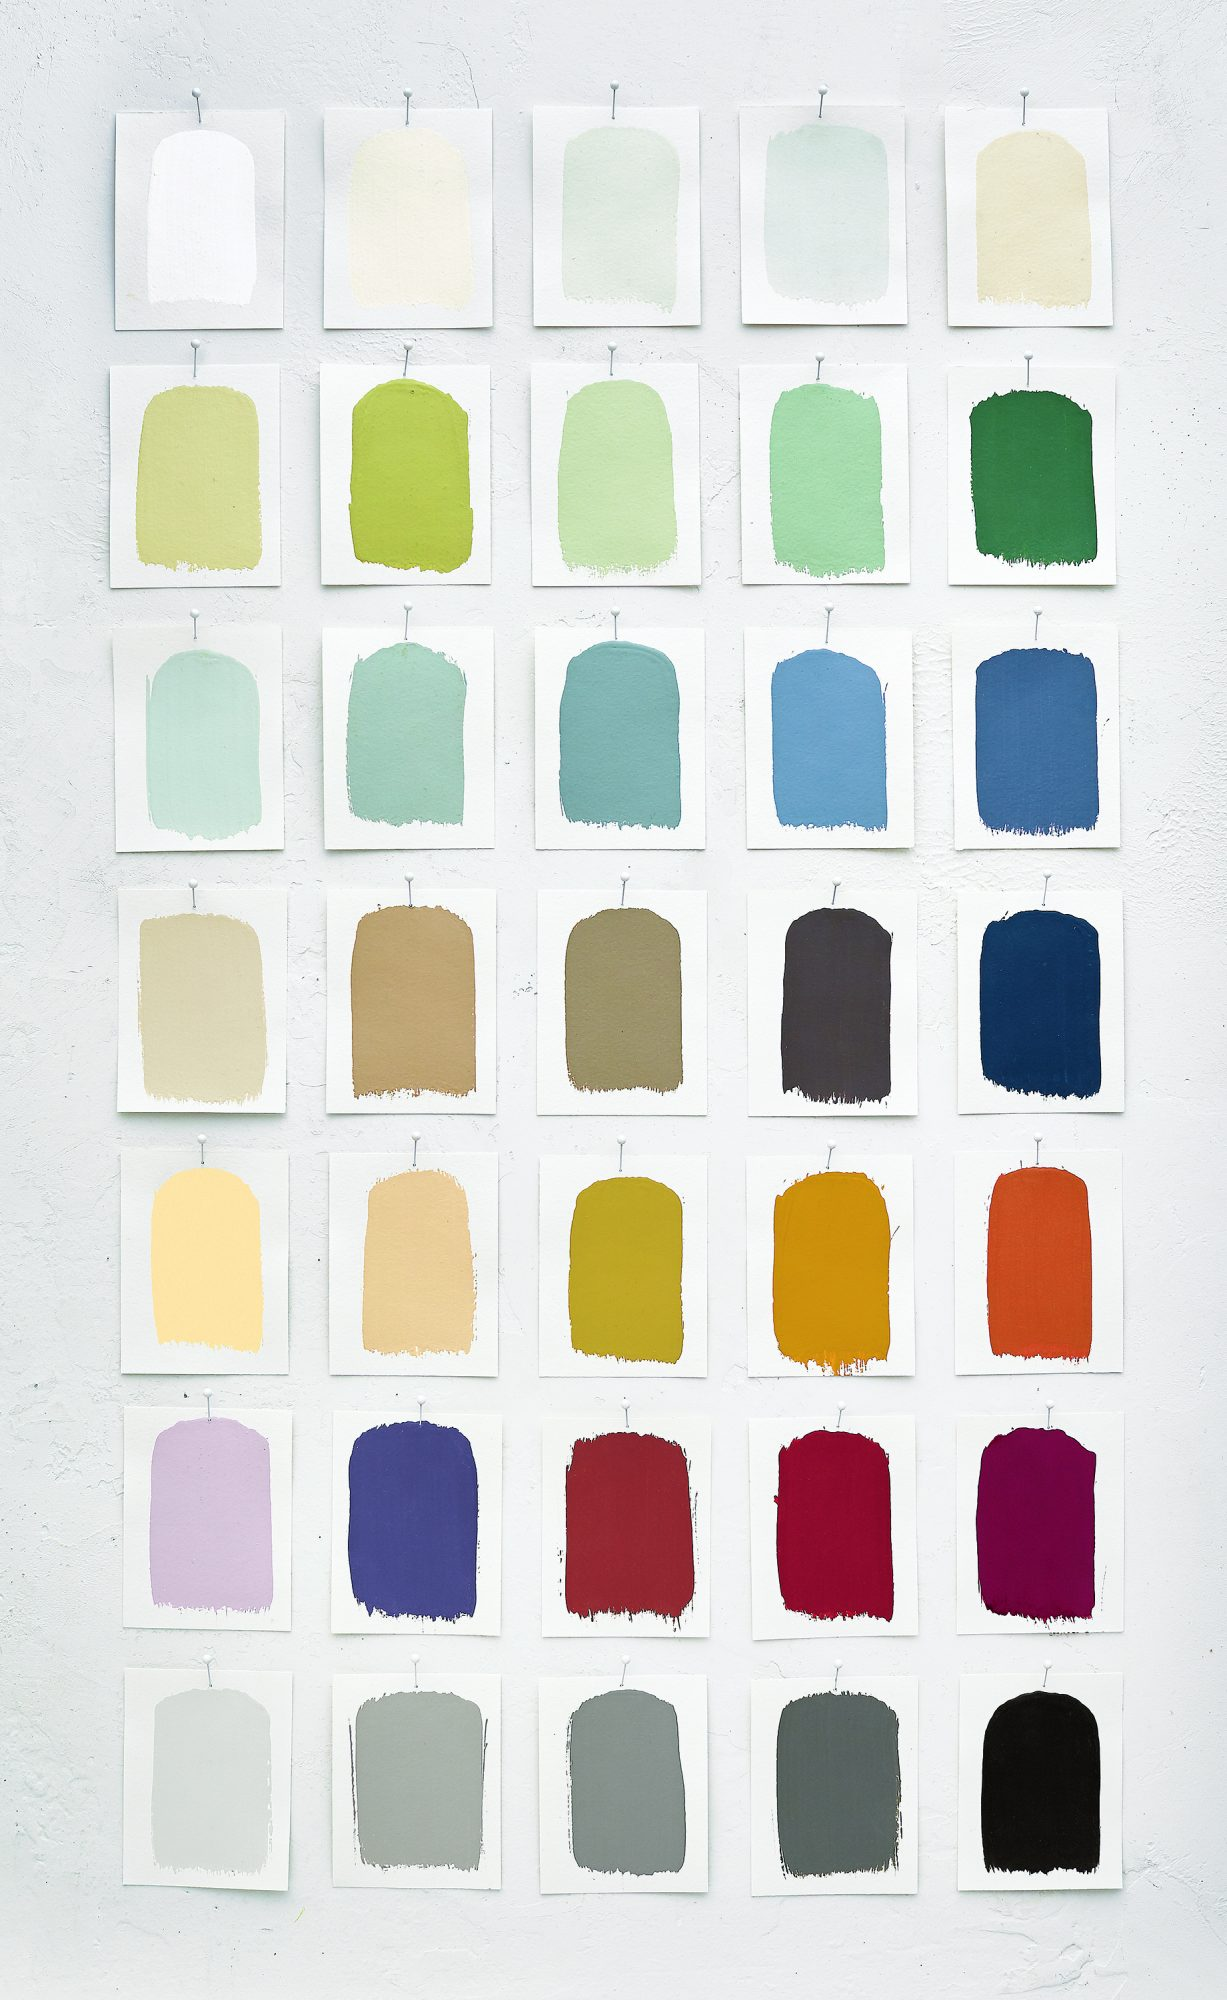 Crate and Barrel Paint Swatches